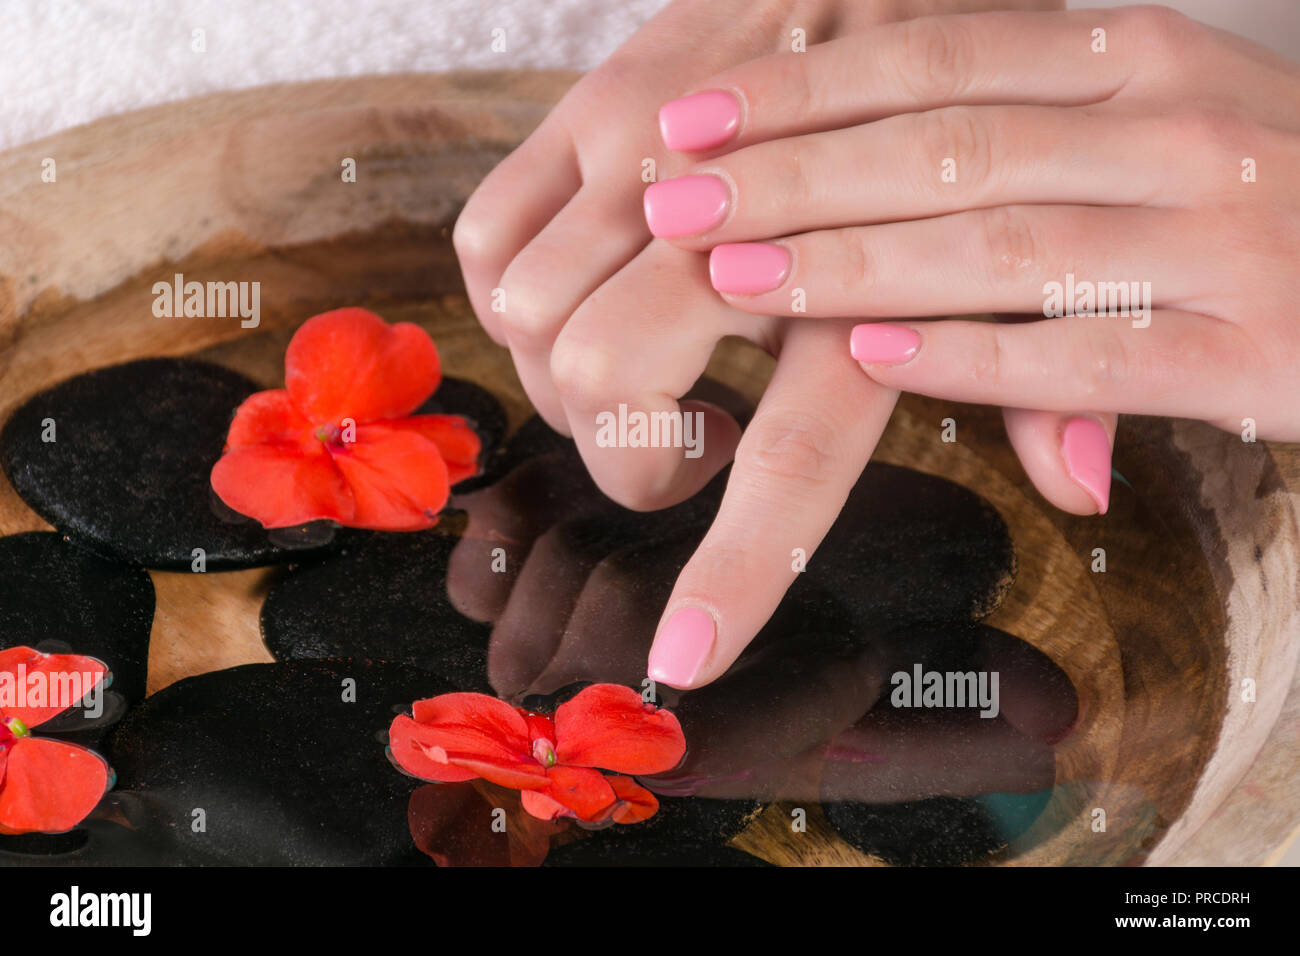 Woman Finger With Pink Nails Gel Polish Touch Red Flower In Water